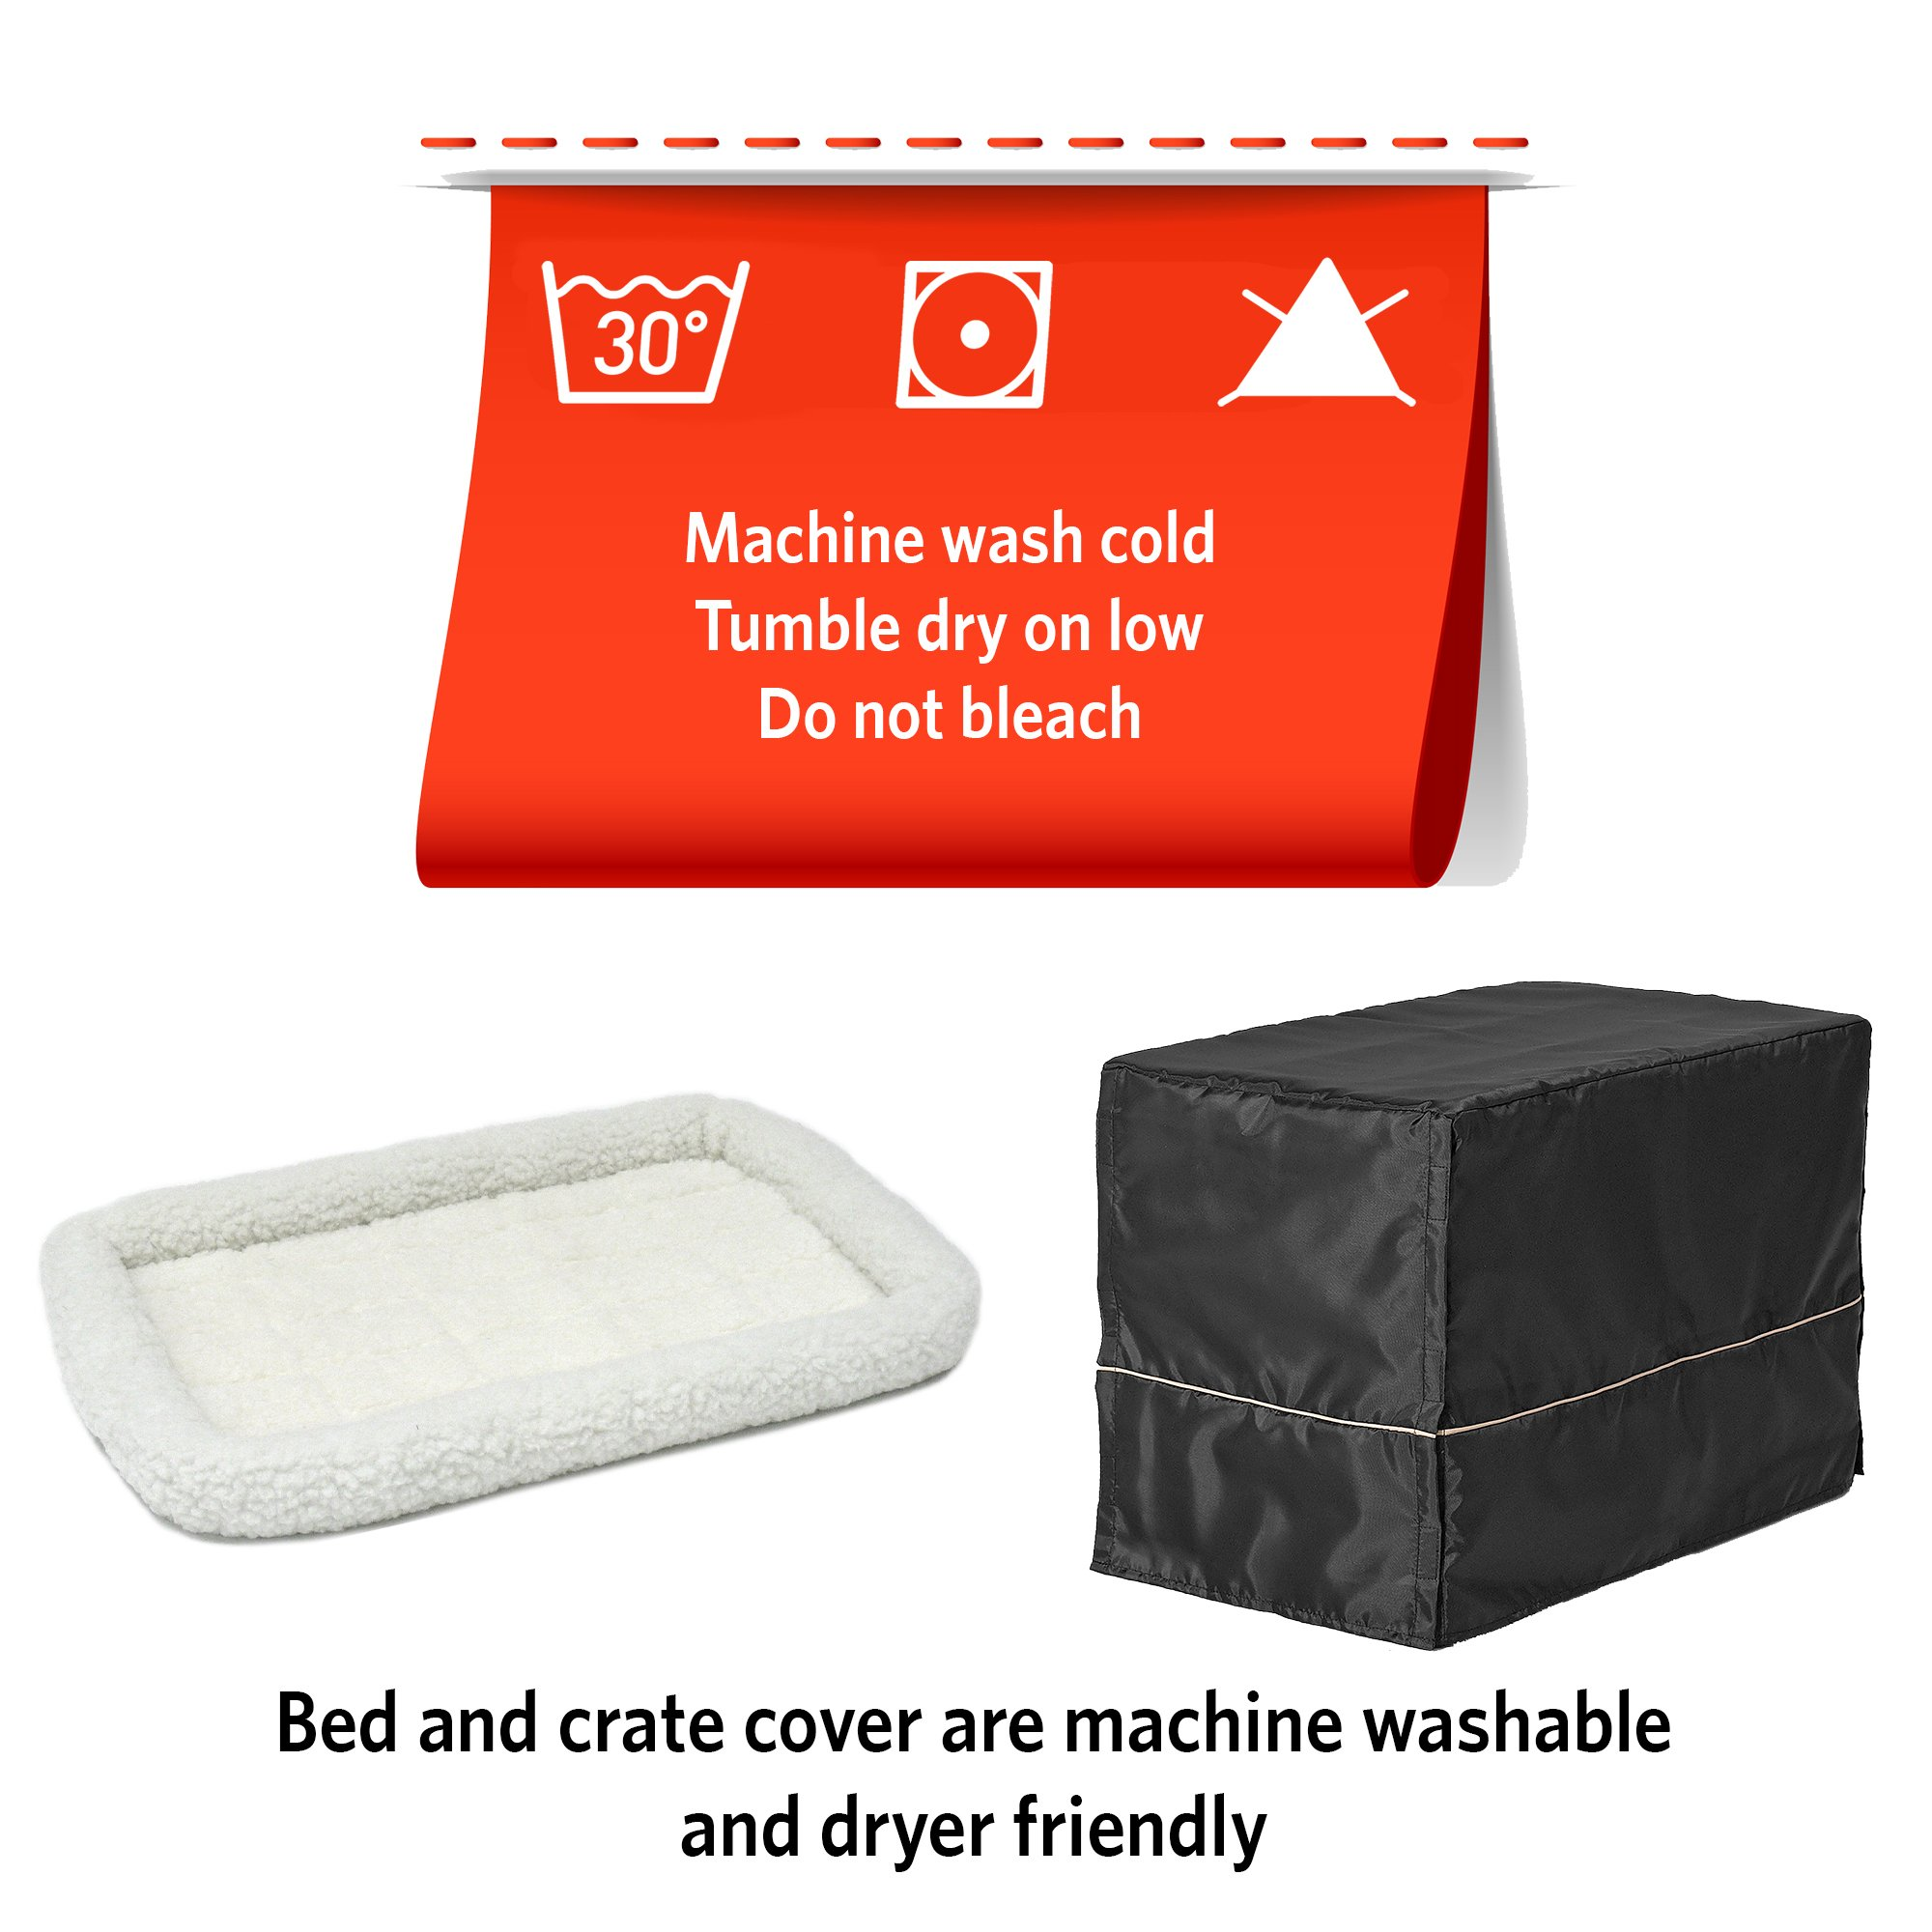 MidWest Homes for Pets Small Dog Crate Starter Kit | One 2-Door iCrate, Pet Bed, Crate Cover & 2 Pet Bowls | 24-Inch Ideal for Small Dog Breeds by MidWest Homes for Pets (Image #7)